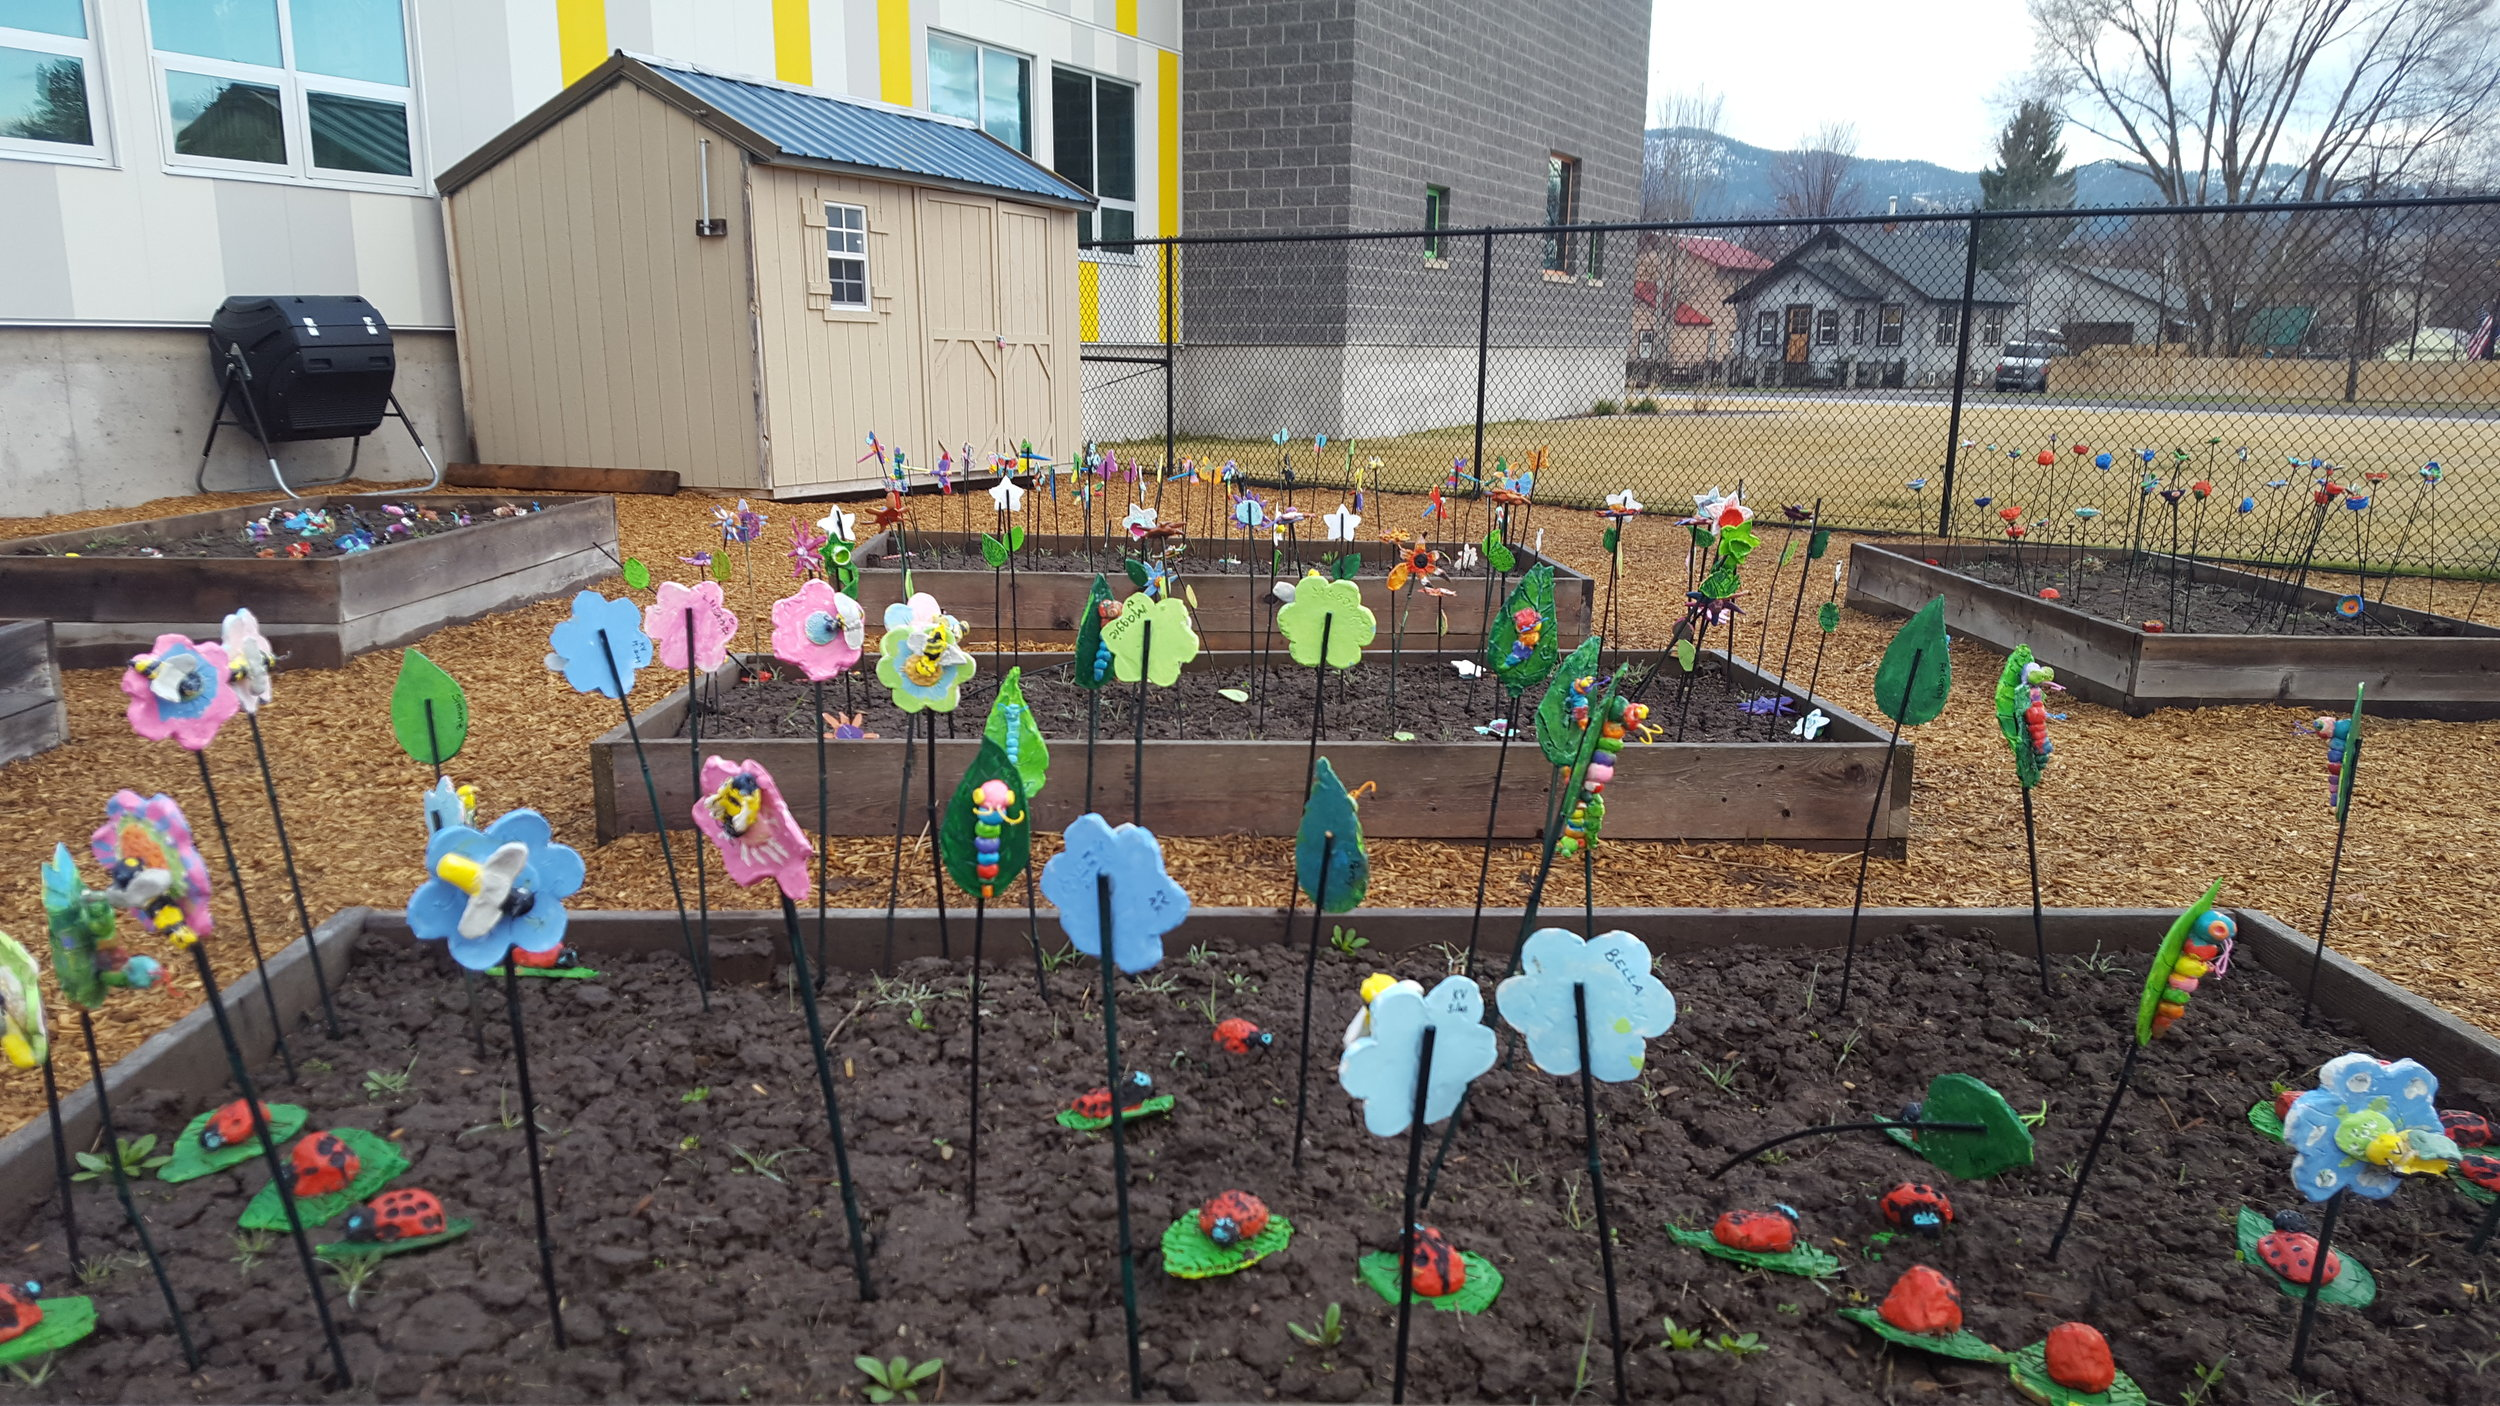 Every single Franklin Elementary student took part in the ceramic art project over the winter, filling their new garden with color before the springtime plantings.